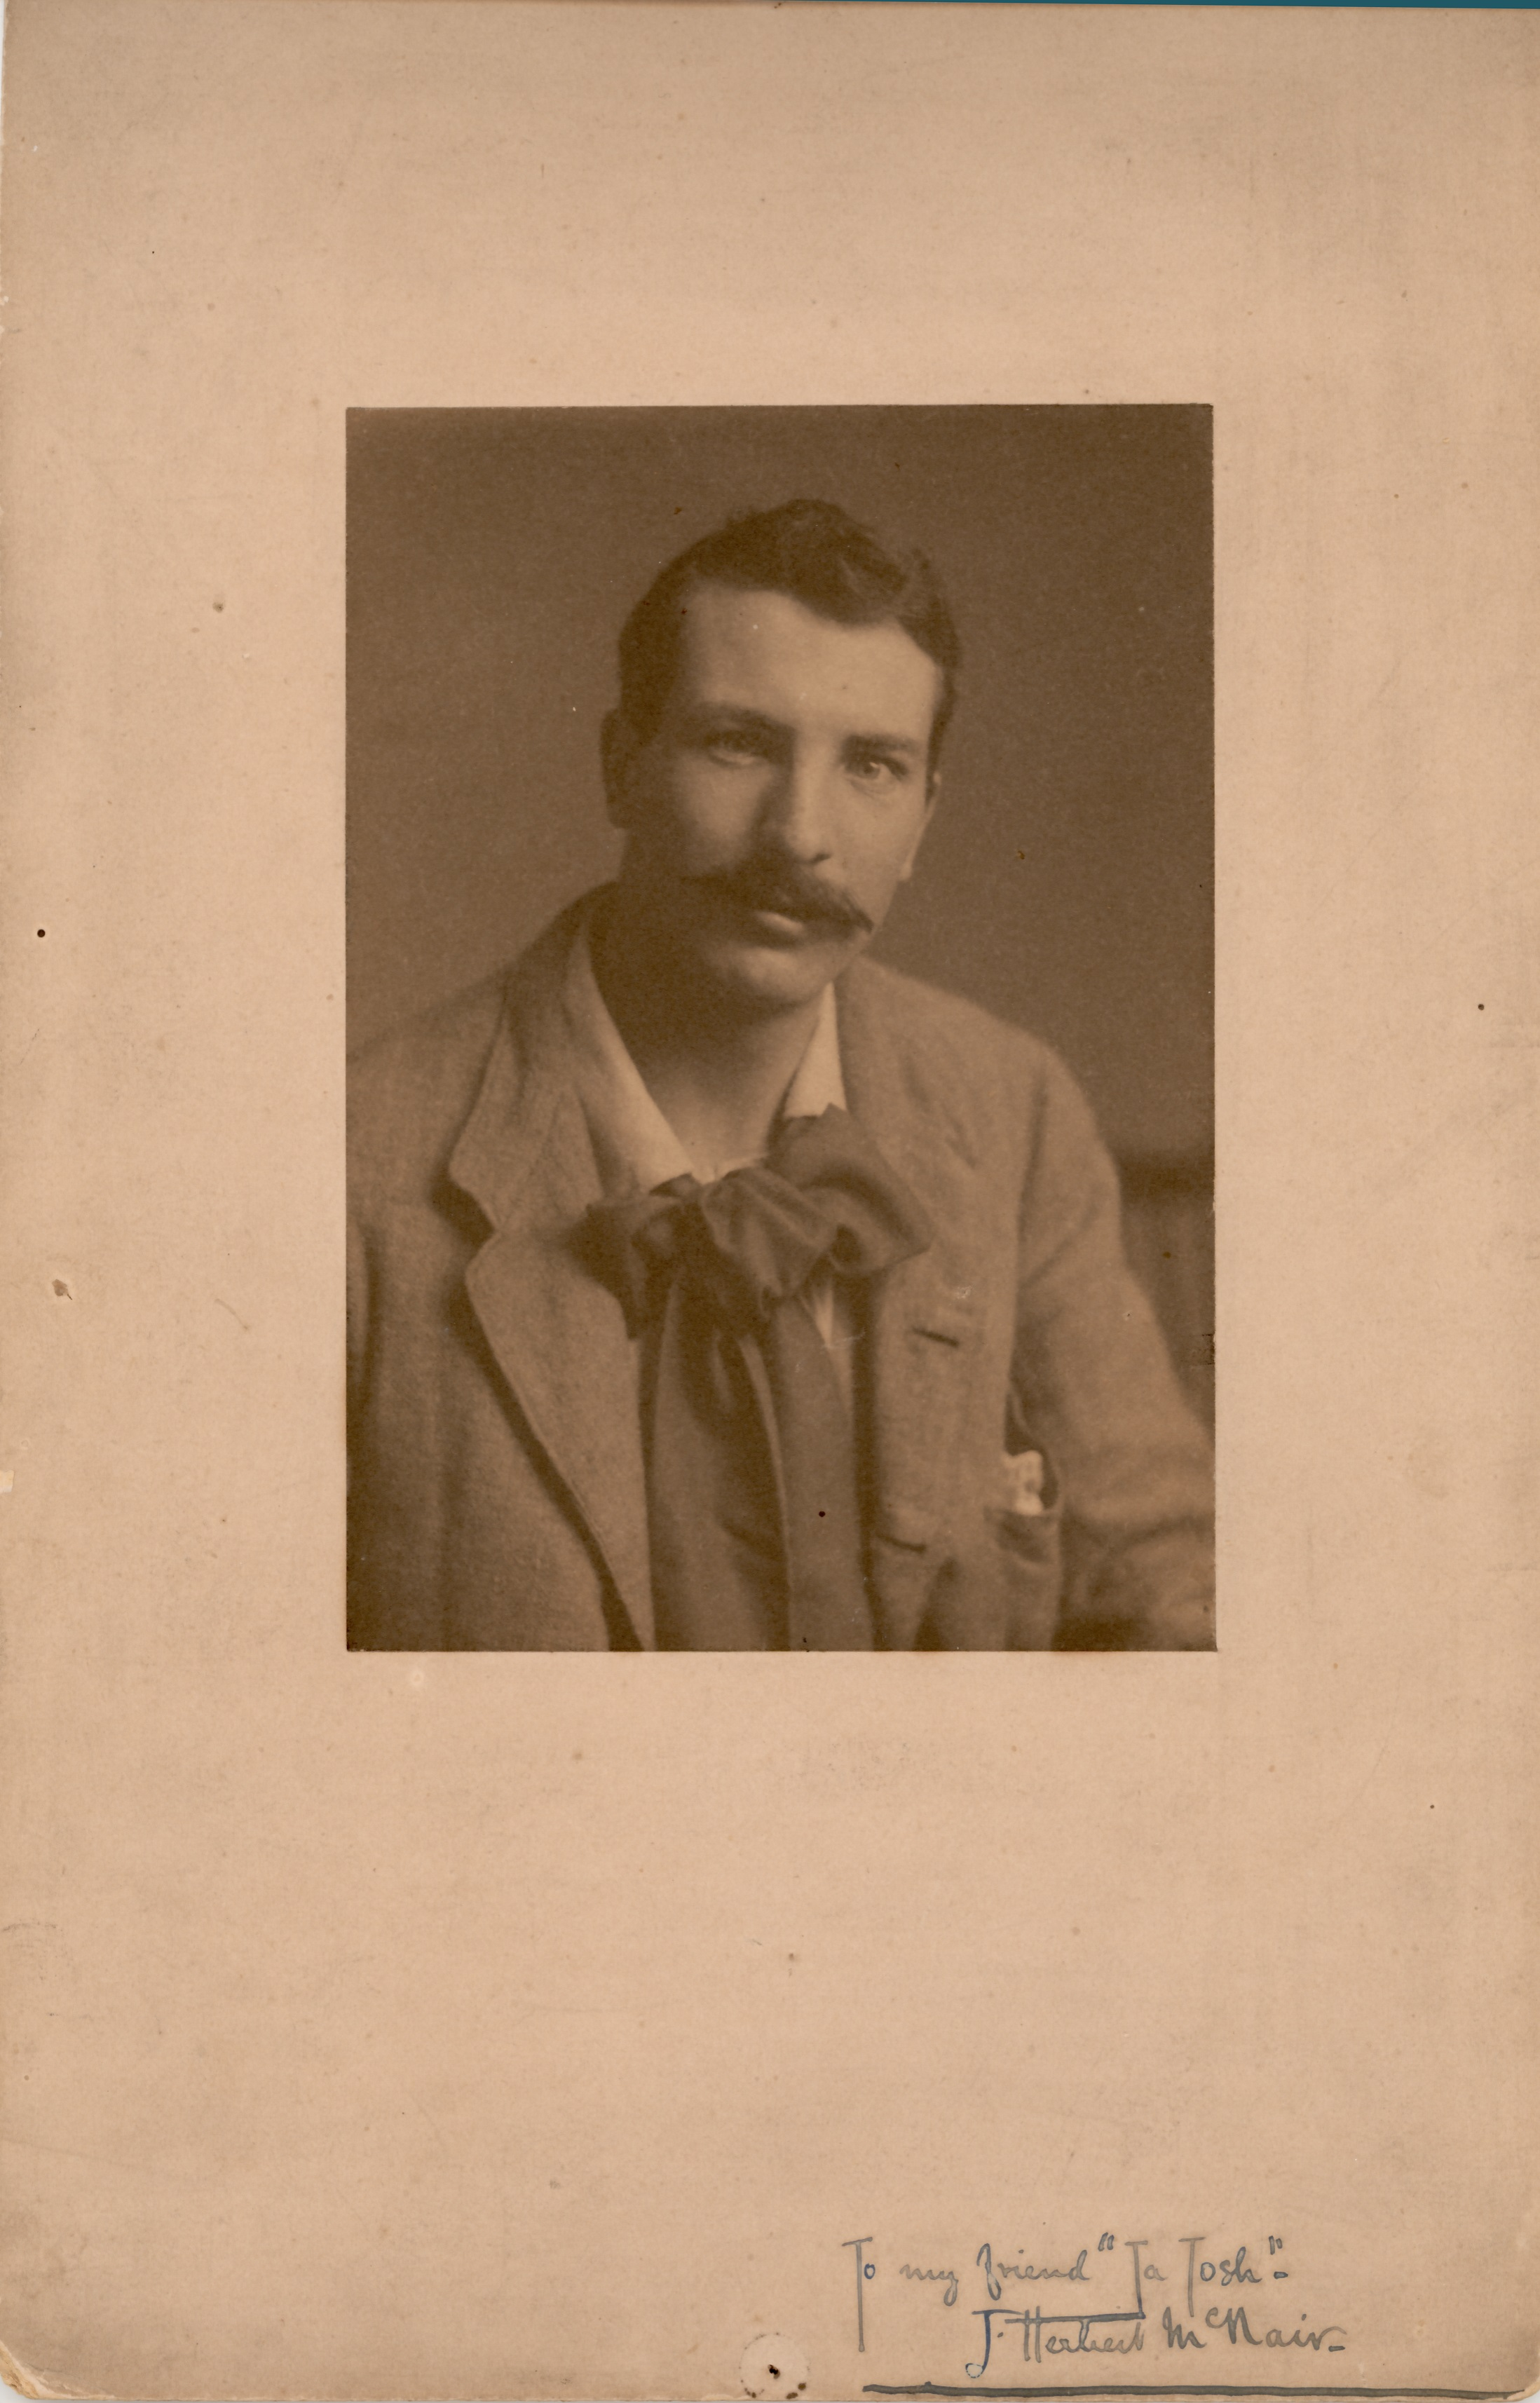 Portrait of Herbert McNair, late 19th-early 20th century